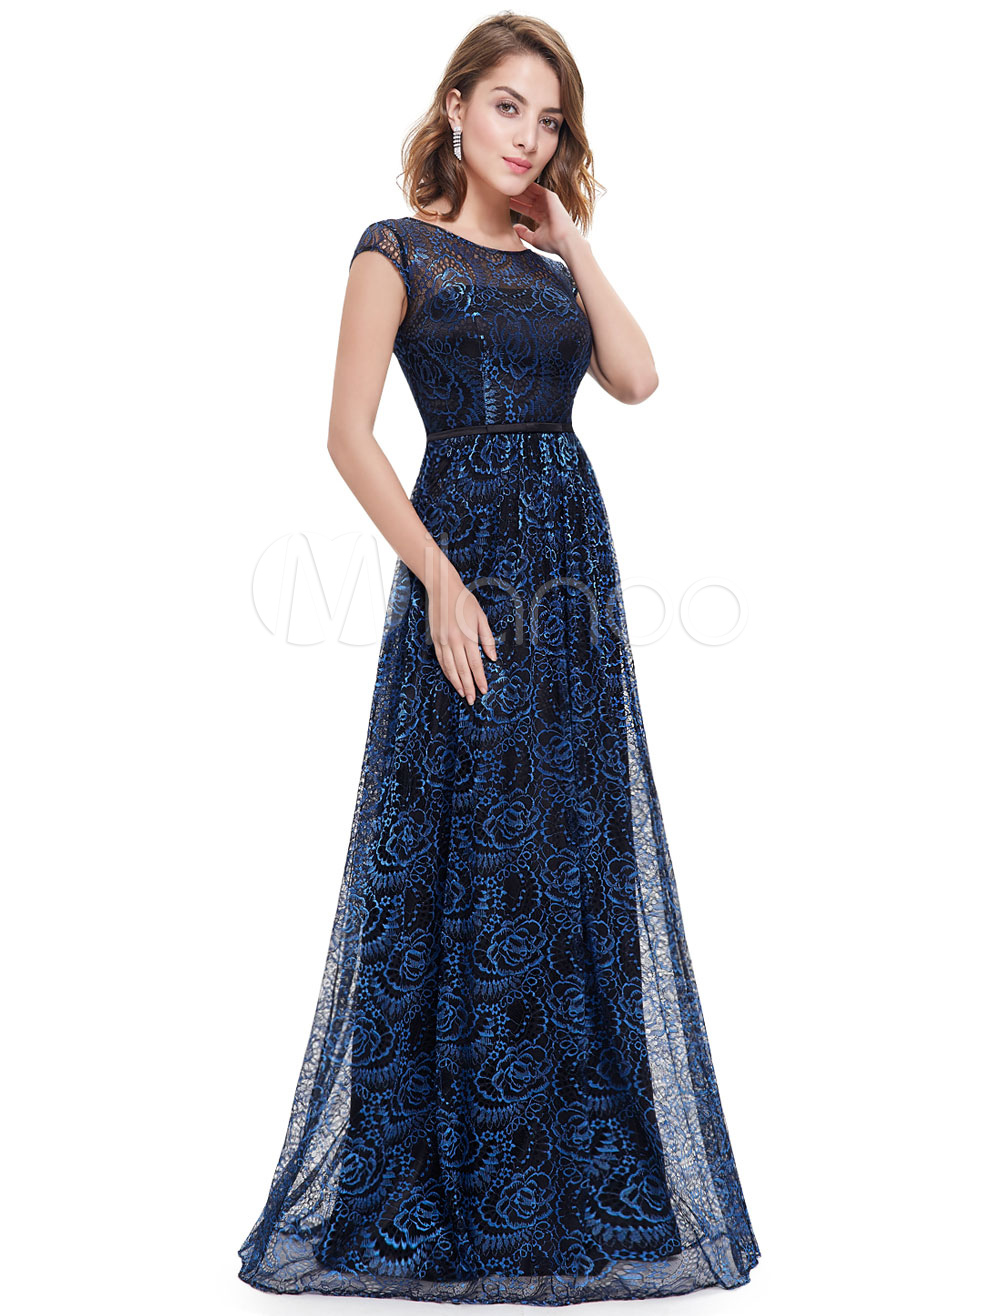 Buy Blue Evening Dresses Lace Mother Of The Bride Dress Backless Illusion A Line Floor Length Wedding Guest Dresses for $105.59 in Milanoo store